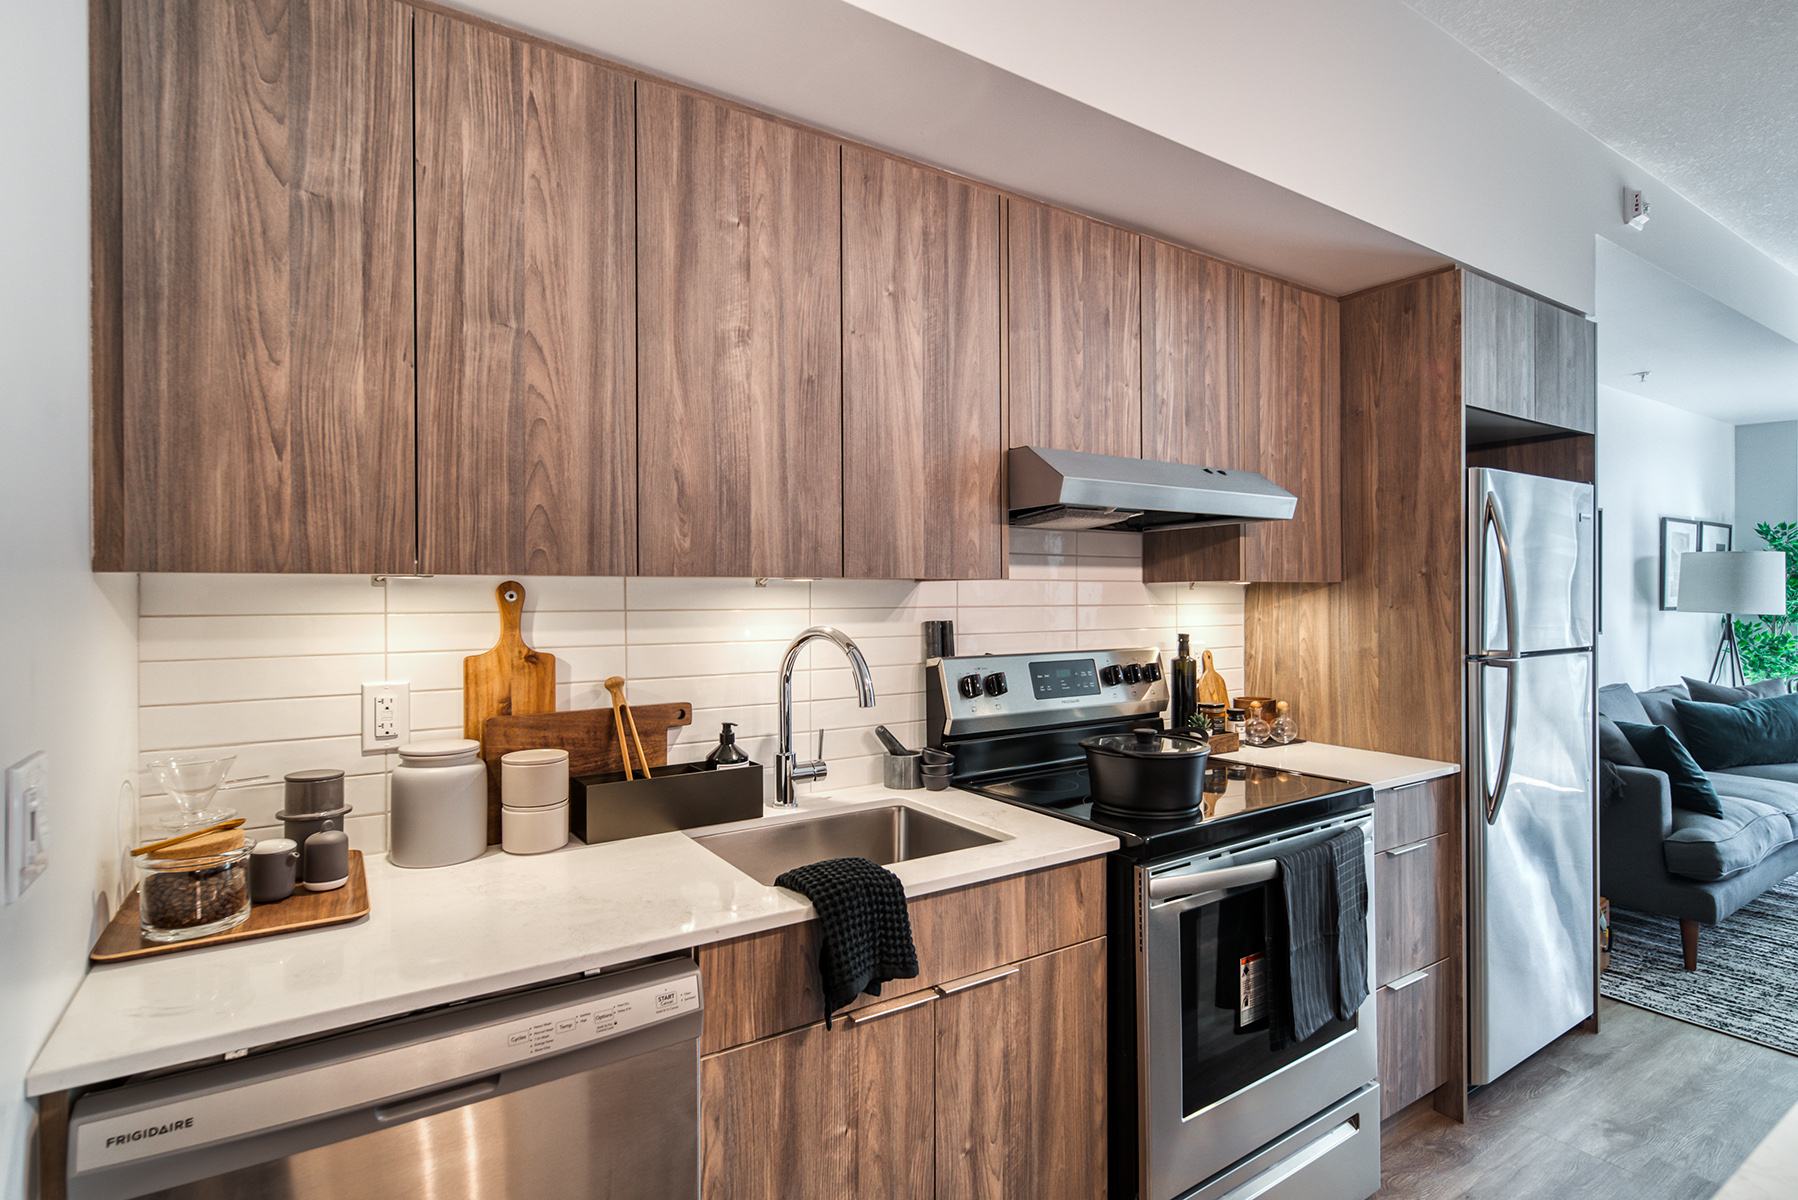 Choice of Two Natural Wood Colour Palettes